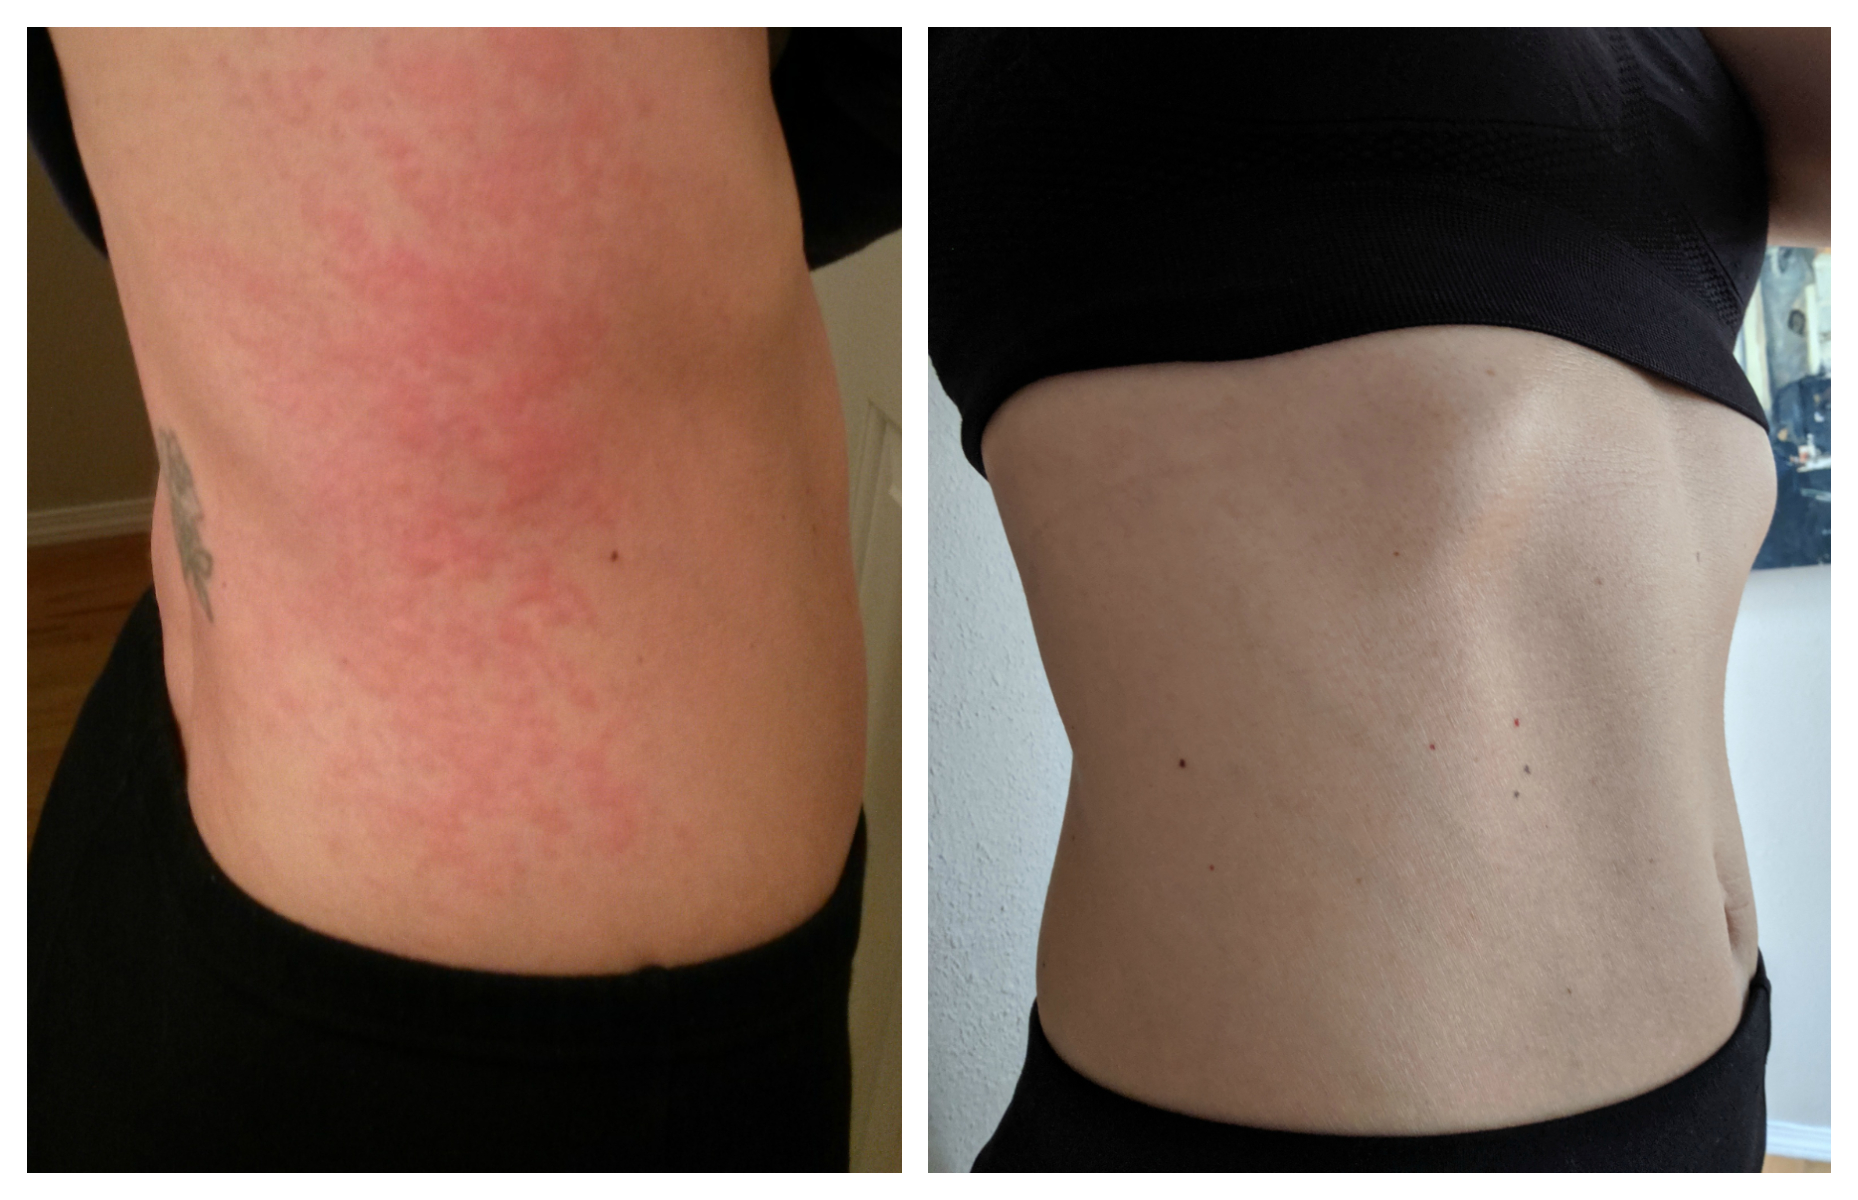 Before and After. This red, itchy rash was my daily reality. Today completely rash/hive free.